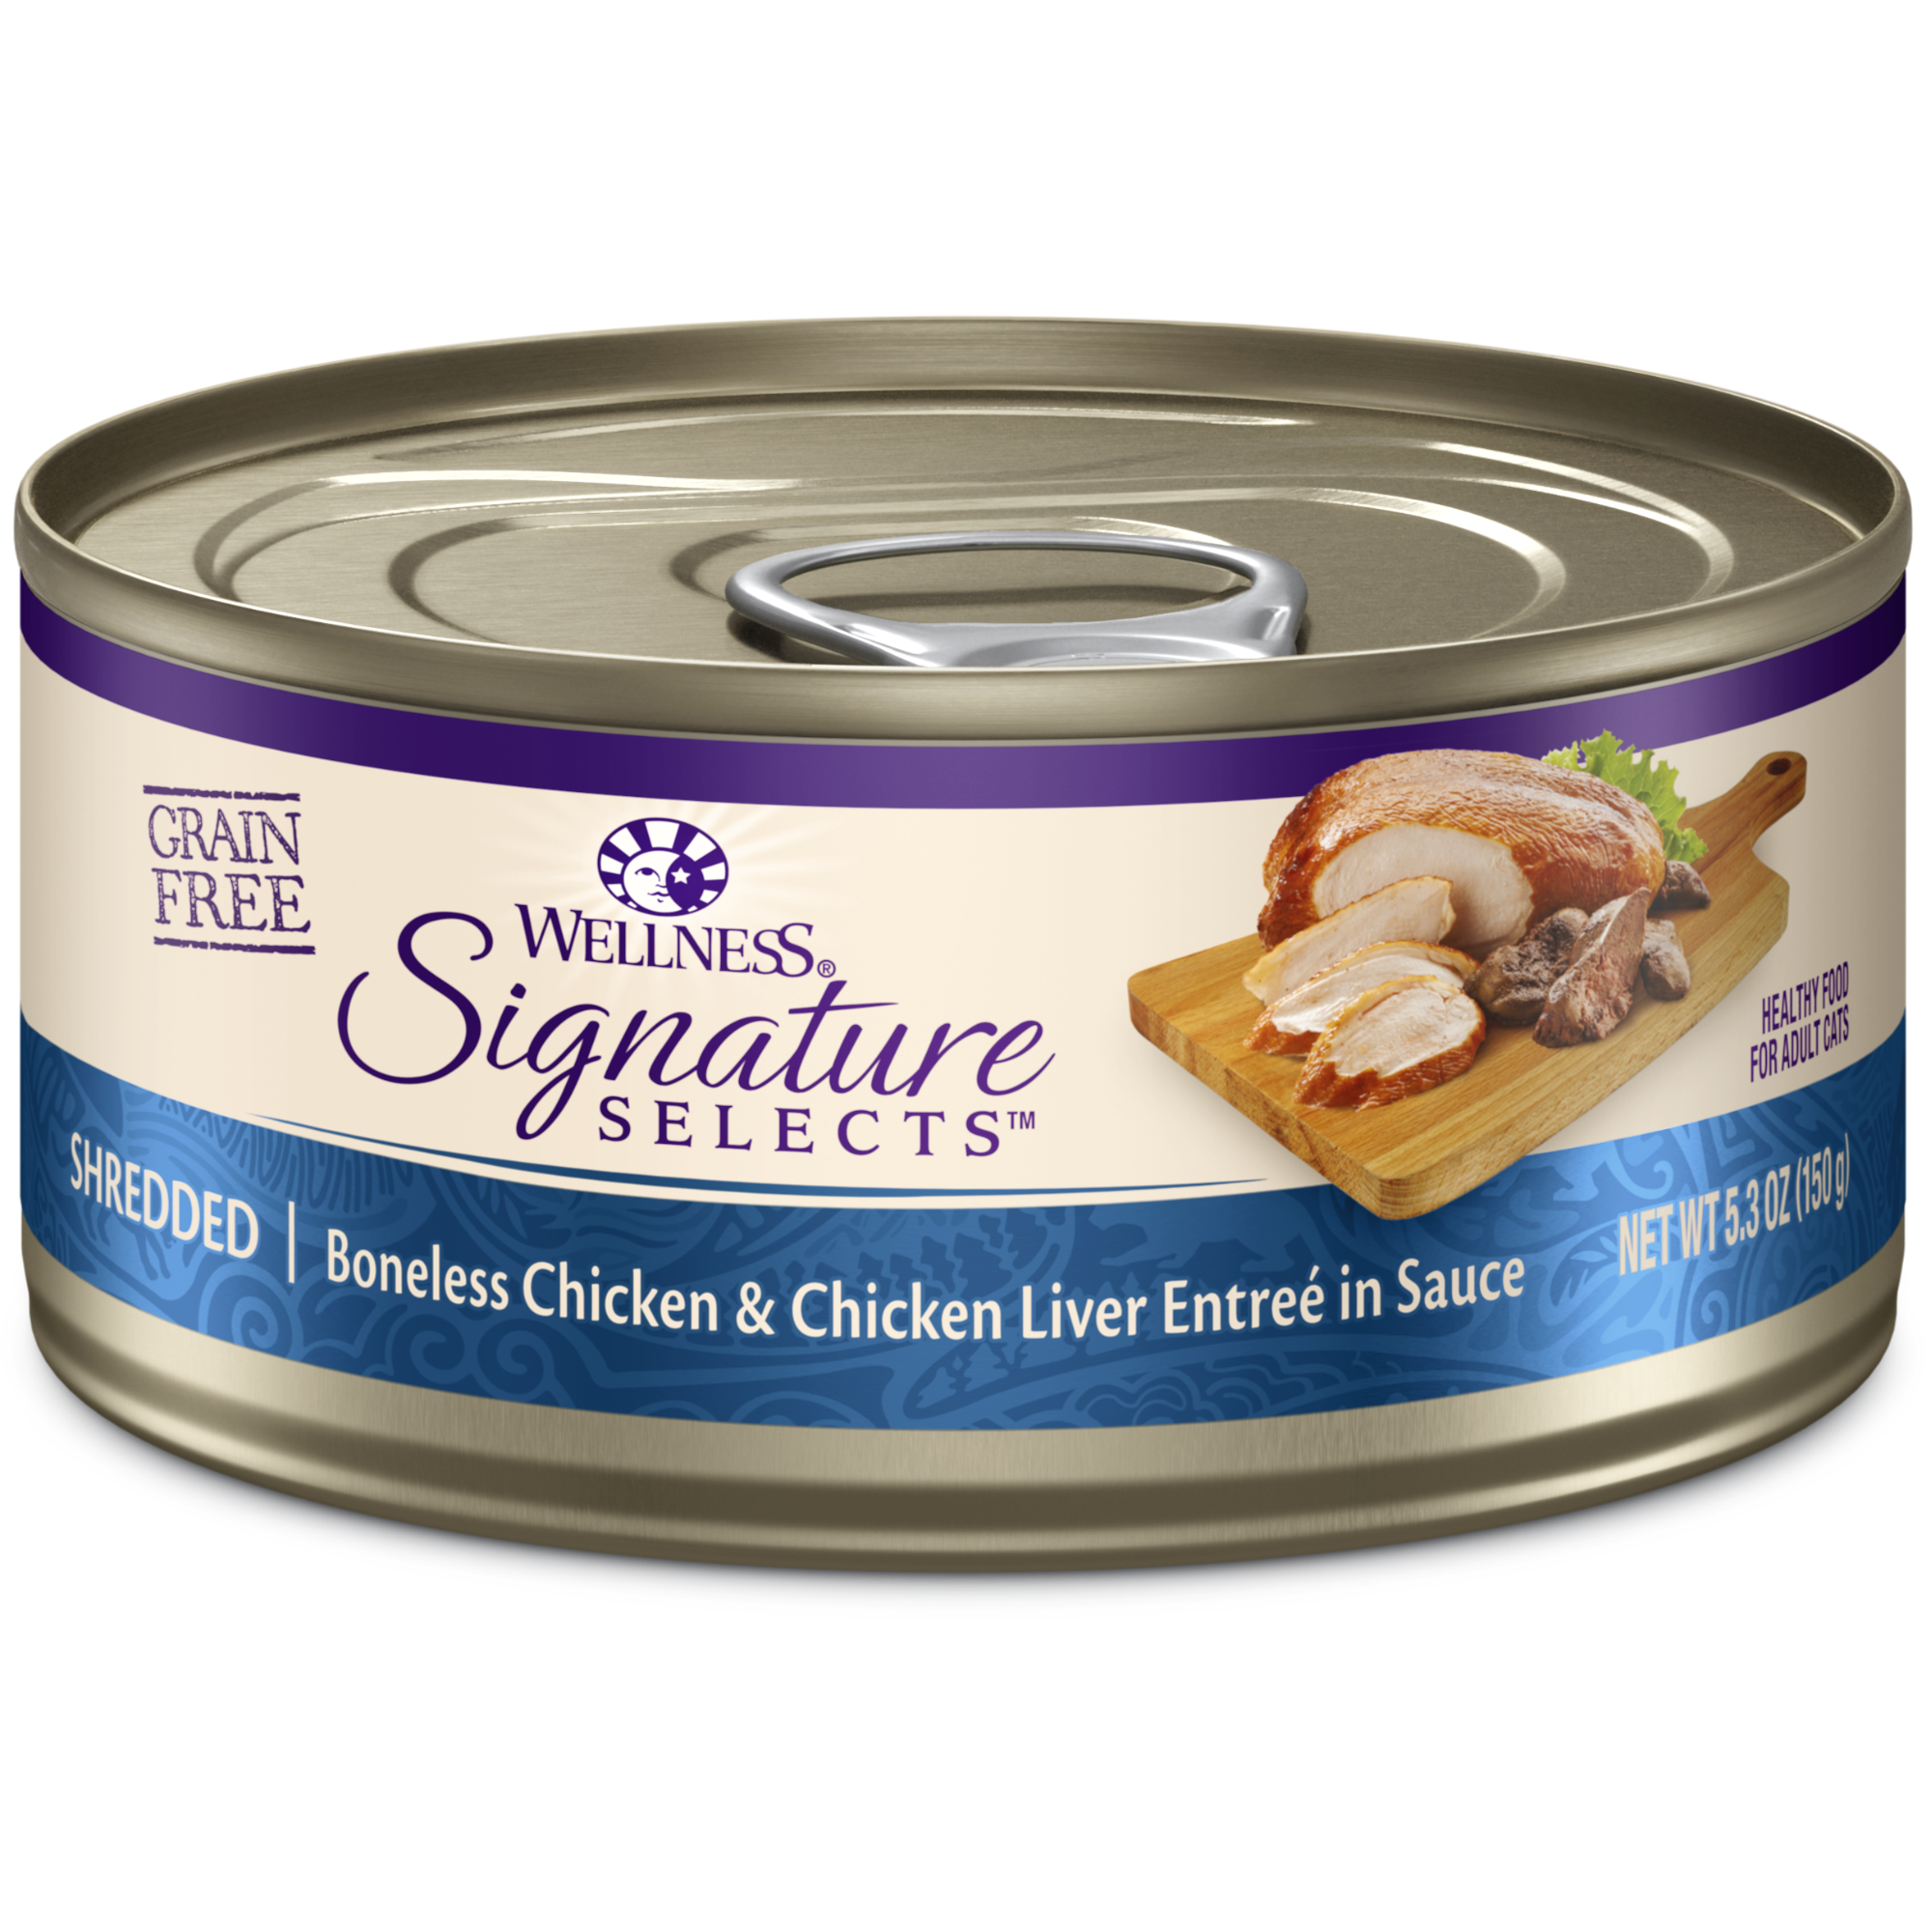 Signature Selects Shredded Chicken and Chicken Liver